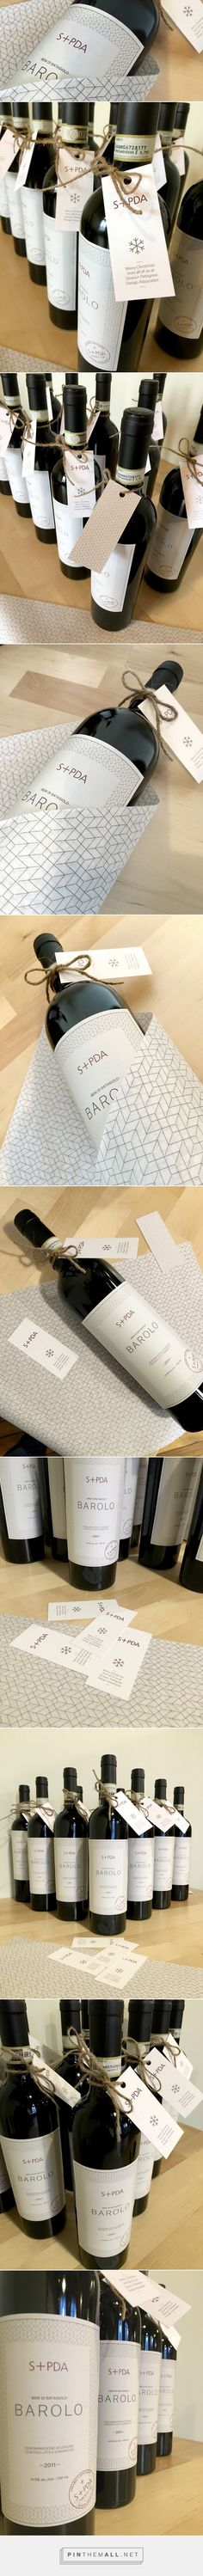 S+PDA Barolo Christmas Gift - Packaging of the World - Creative Package Design - http://www.packagingoftheworld.com/2016/03/spda-barolo-christmas-gift.html